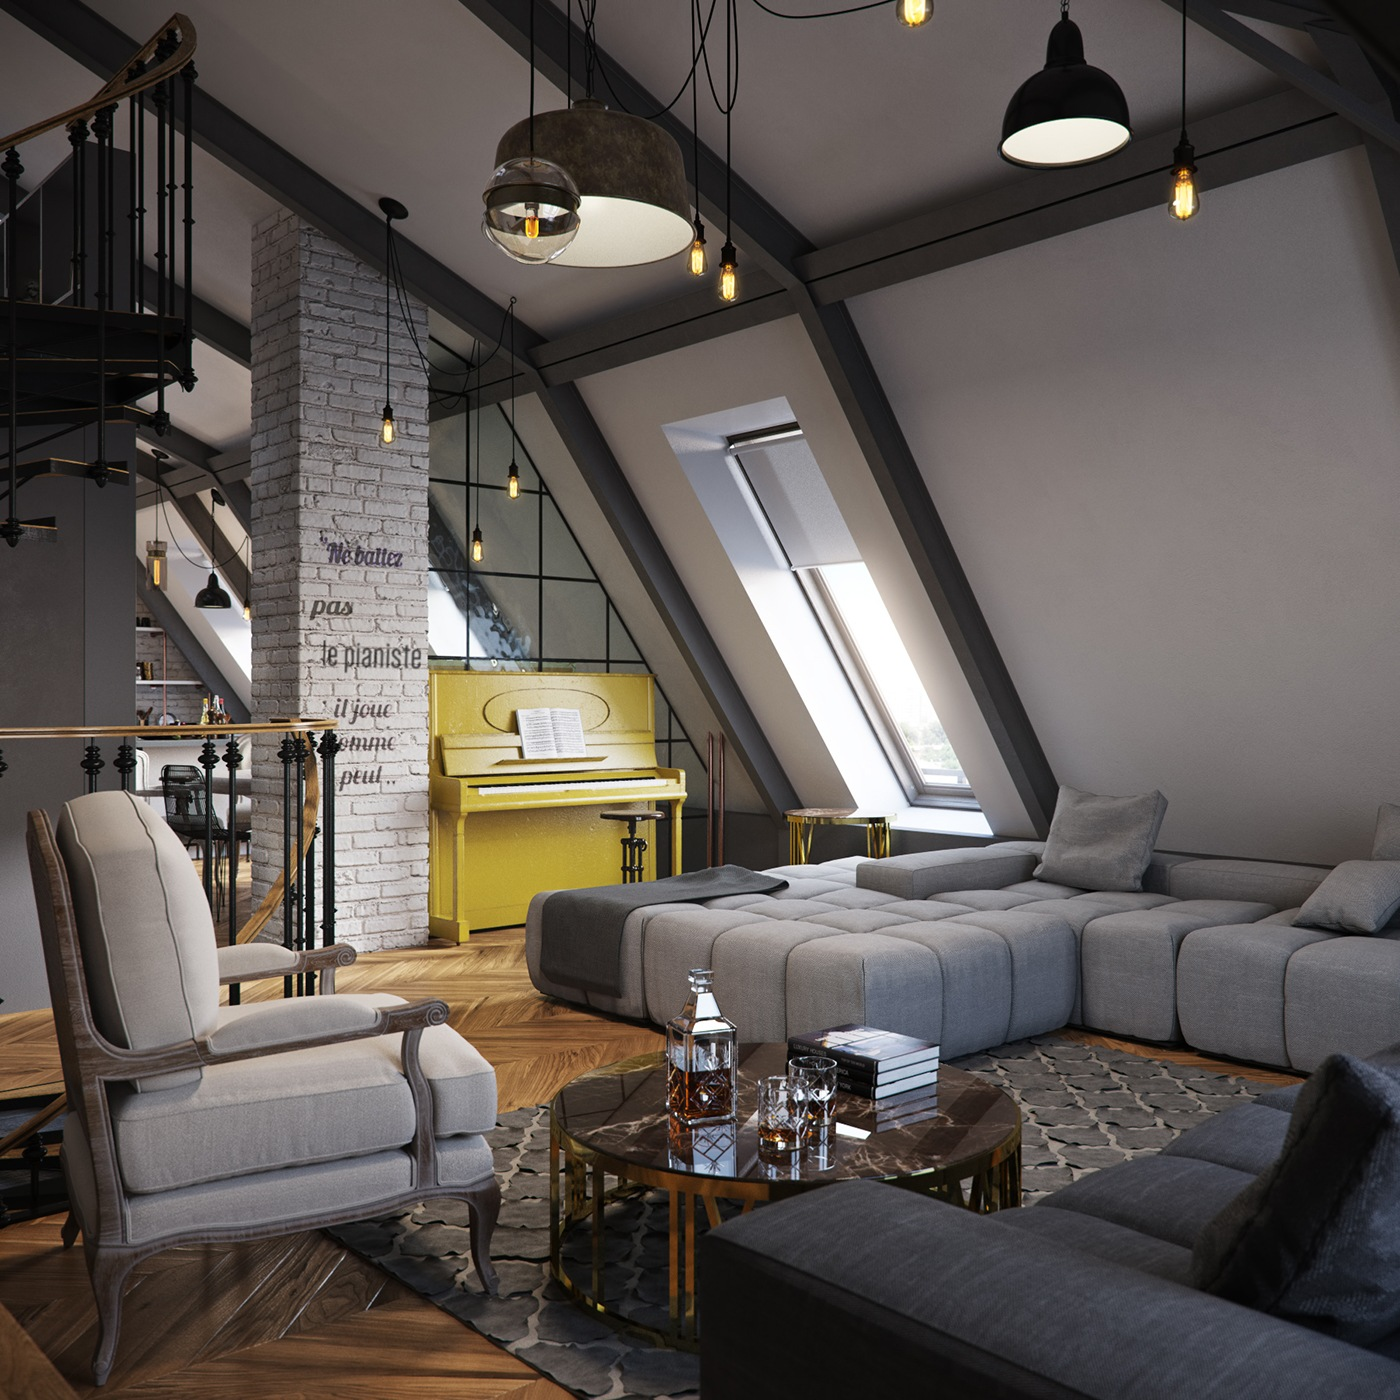 European Home Design Nyc: Three Dark Colored Loft Apartments With Exposed Brick Walls